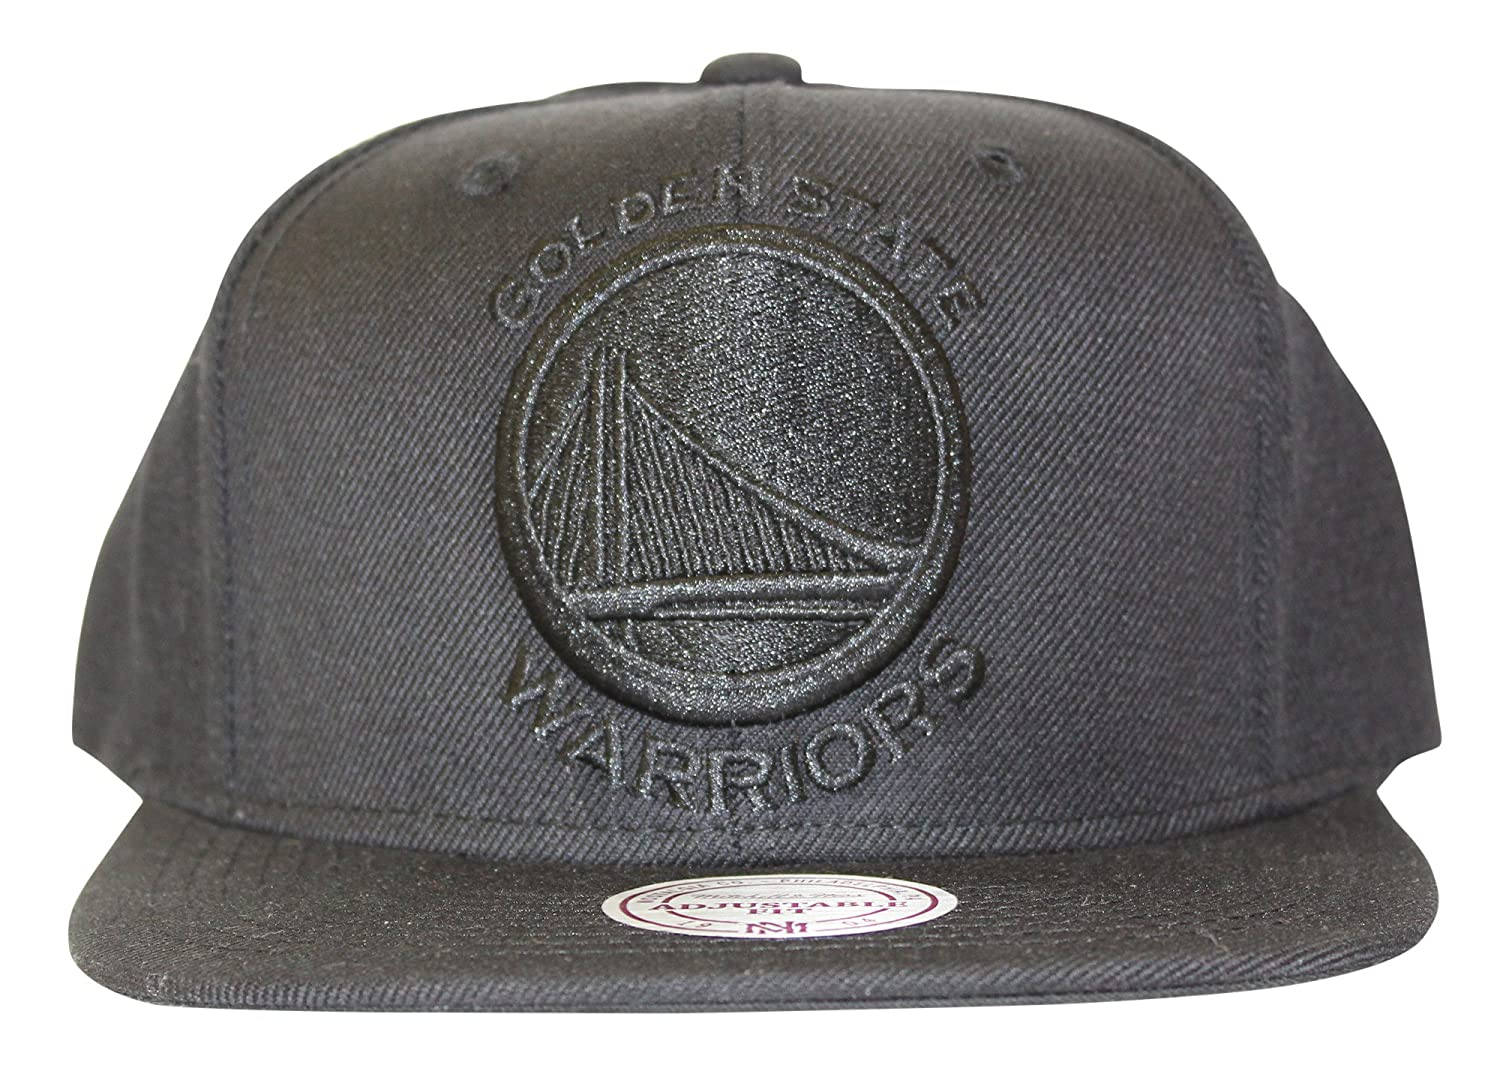 brand new 19b5c f1bf7 Amazon.com   Mitchell   Ness Golden State Warriors Snapback Hat Cap All  Black BLACK   Clothing